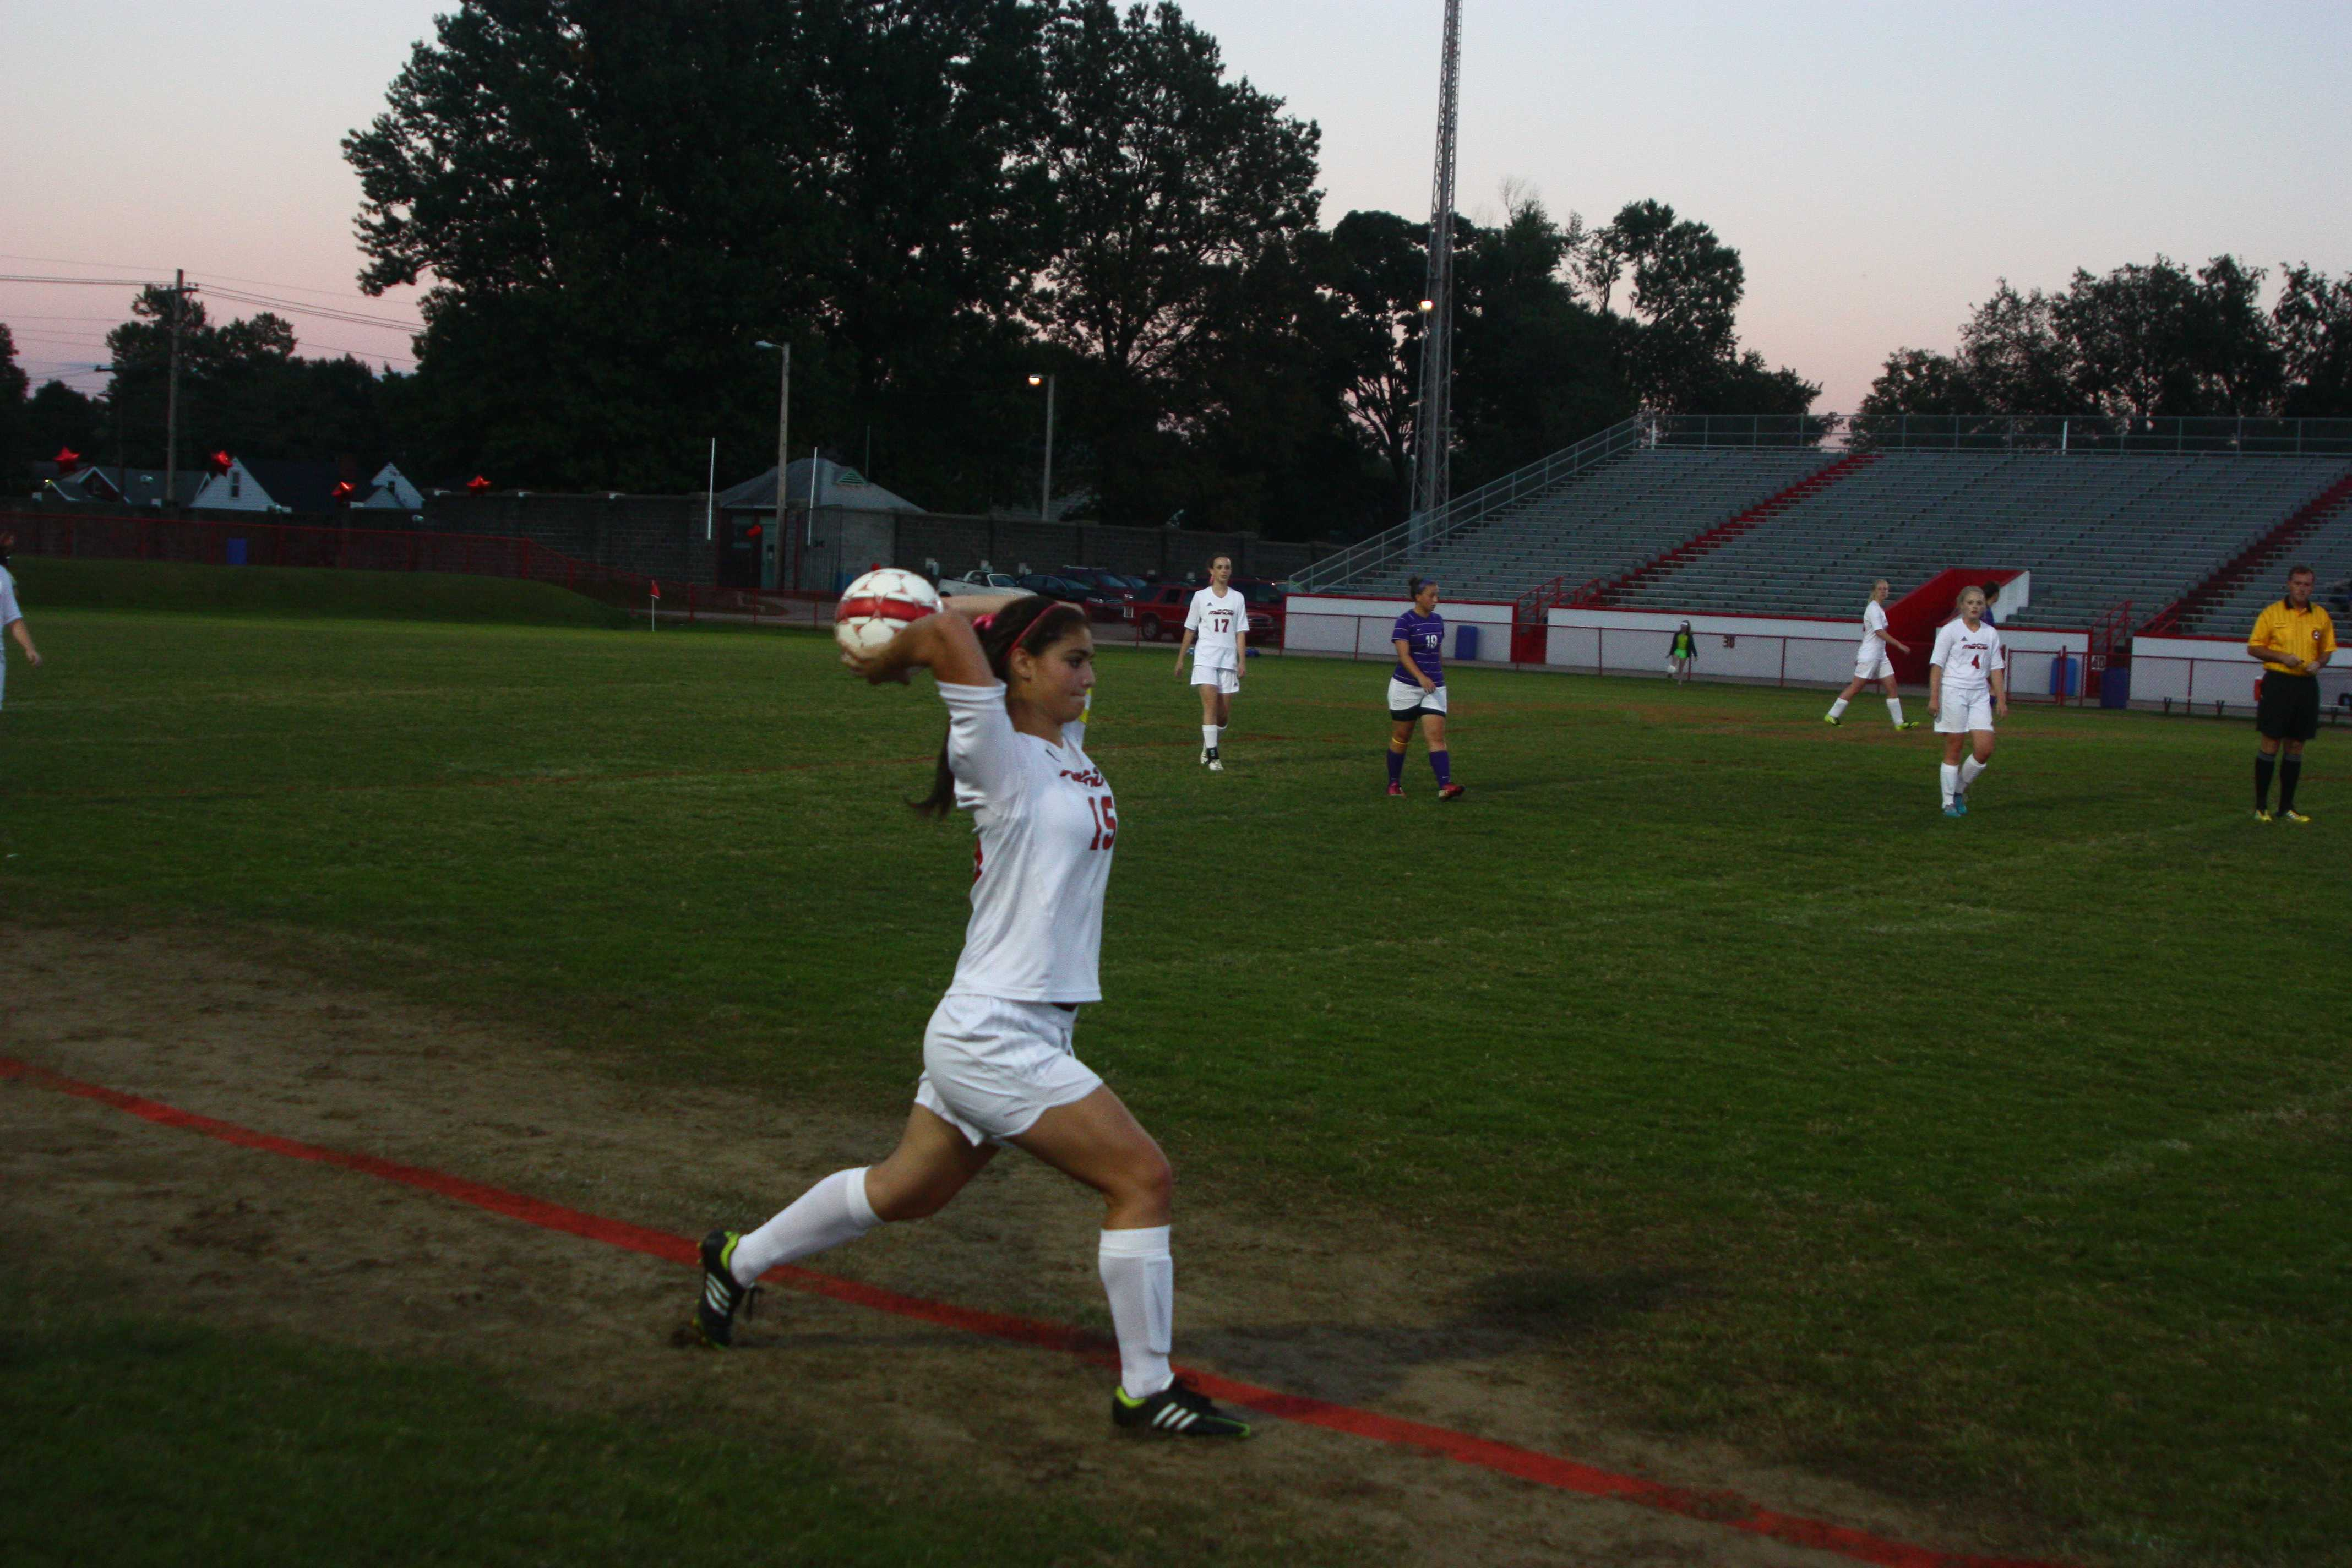 Melissa Kapsalis (12, #15) throws the ball in after an out of bounds call on Bardstown